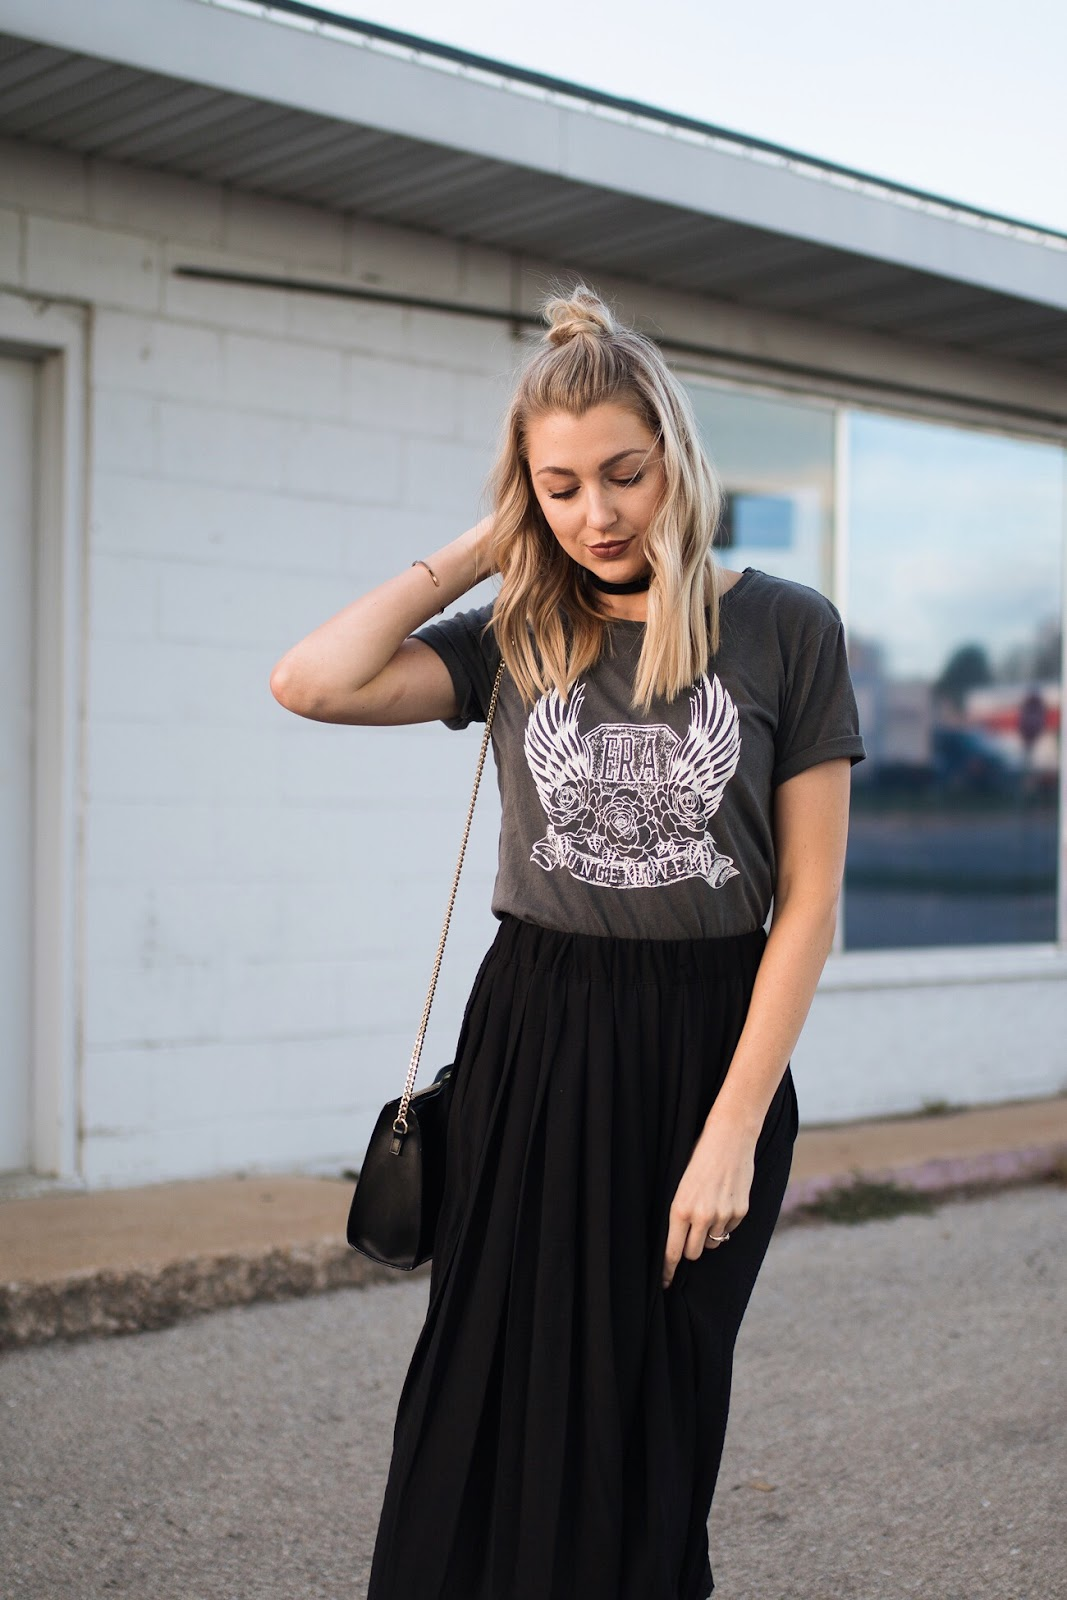 Graphic tee with a skirt